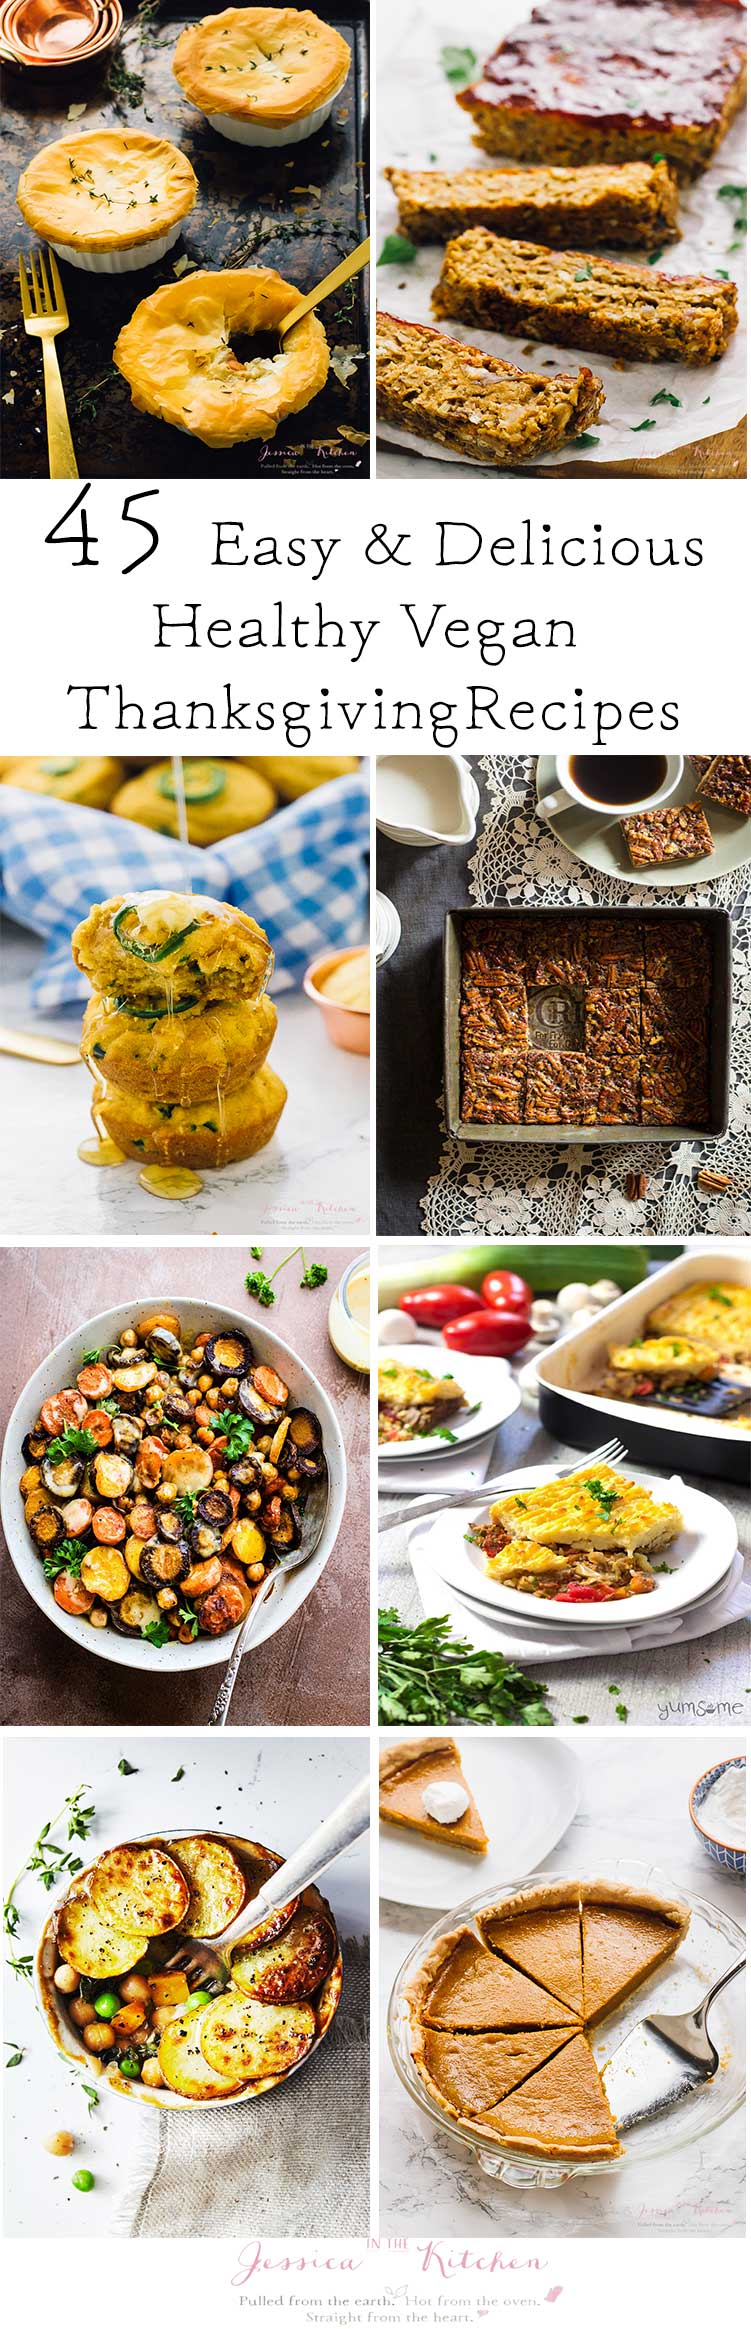 45 Easy & Delicious Healthy Vegan Thanksgiving Recipes to ensure you have the absolutely best Thanksgiving!